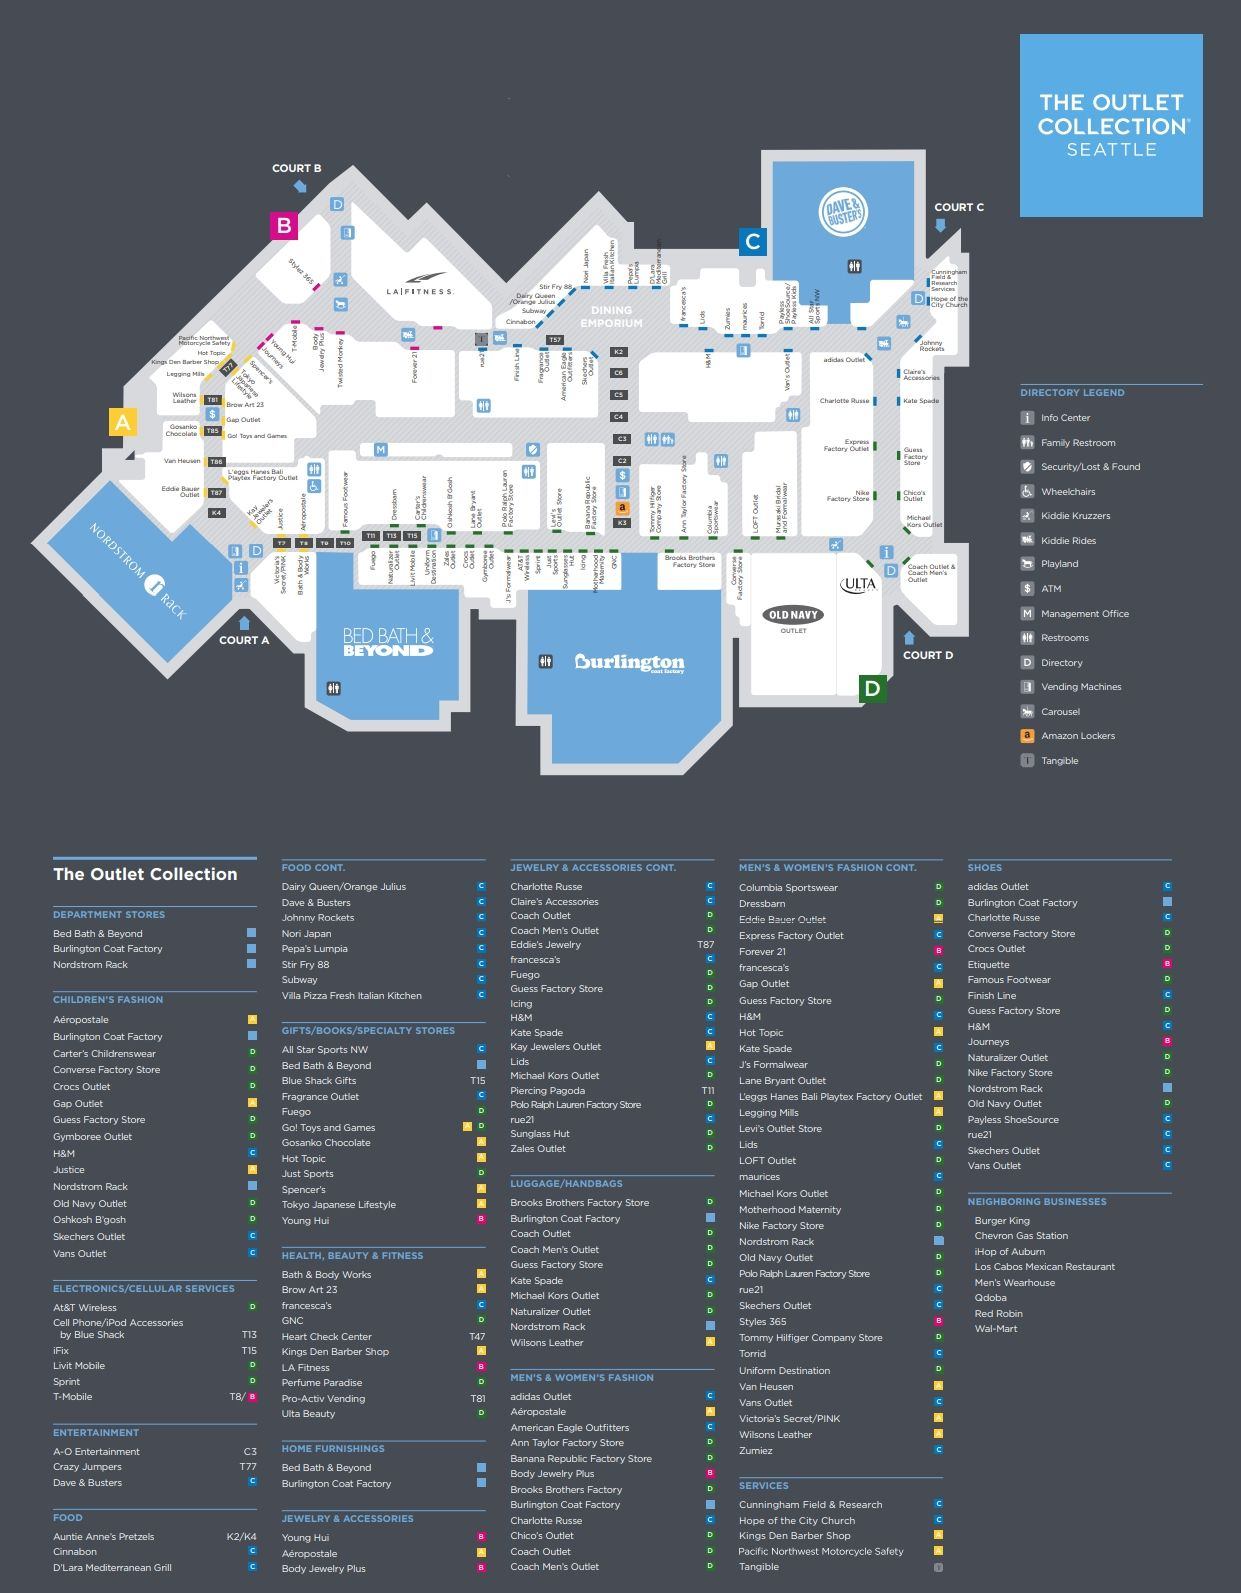 The Outlet Collection Seattle shopping plan | Mall maps ... on emergency operations center, shopping center, satellite center,